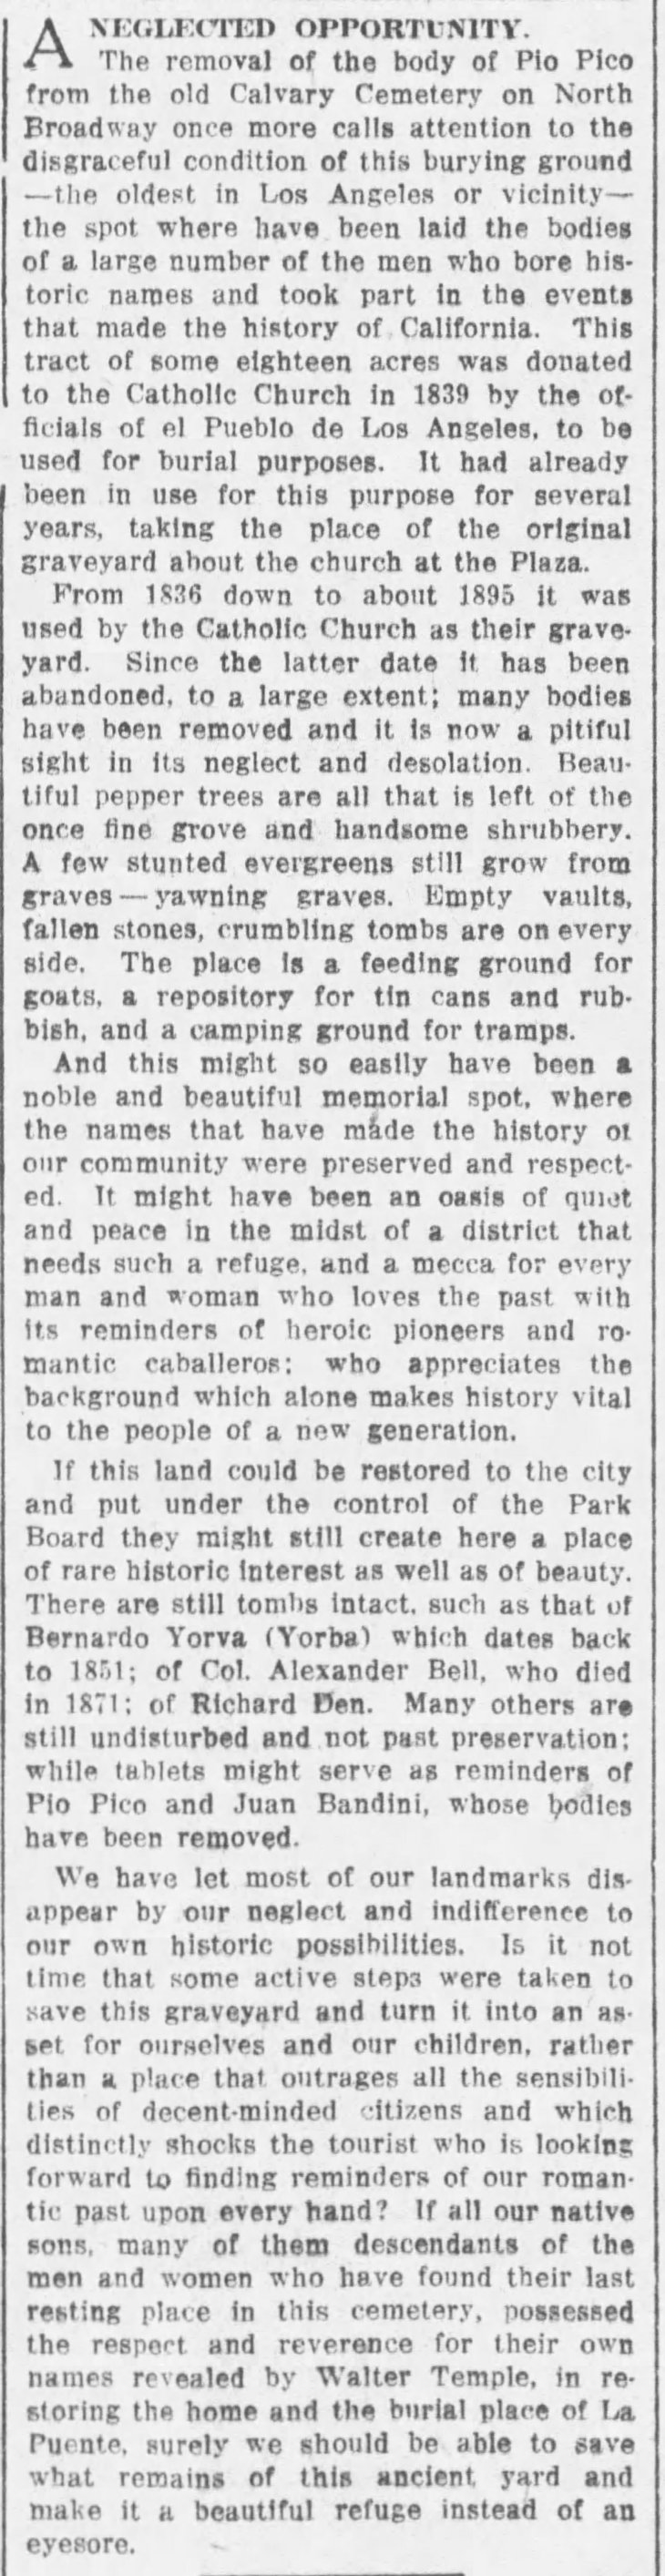 Pio Pico removal from Calvary Cemetery editorial The_Los_Angeles_Times_Tue__Mar_1__1921_